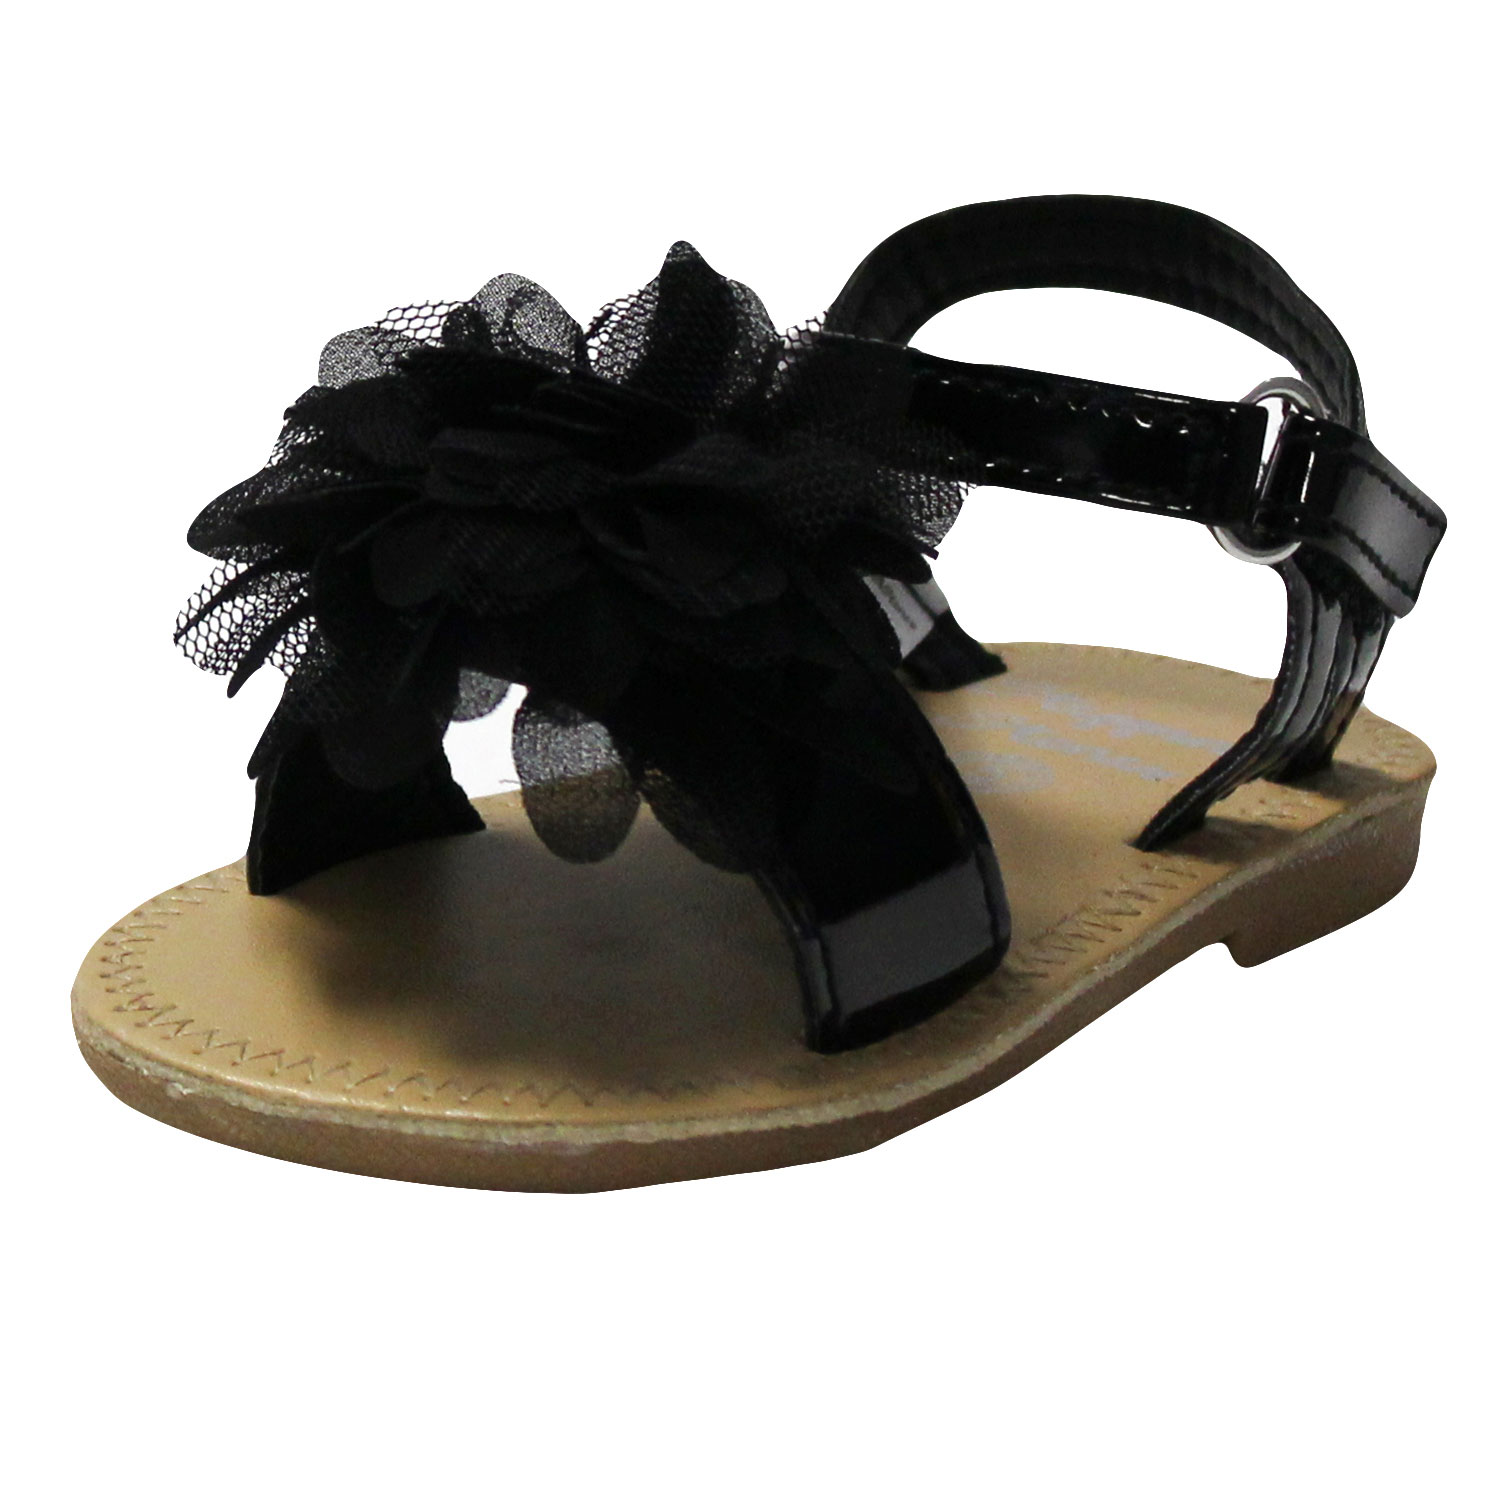 Stepping Stones Little Girls Gladiator Black Sandals with